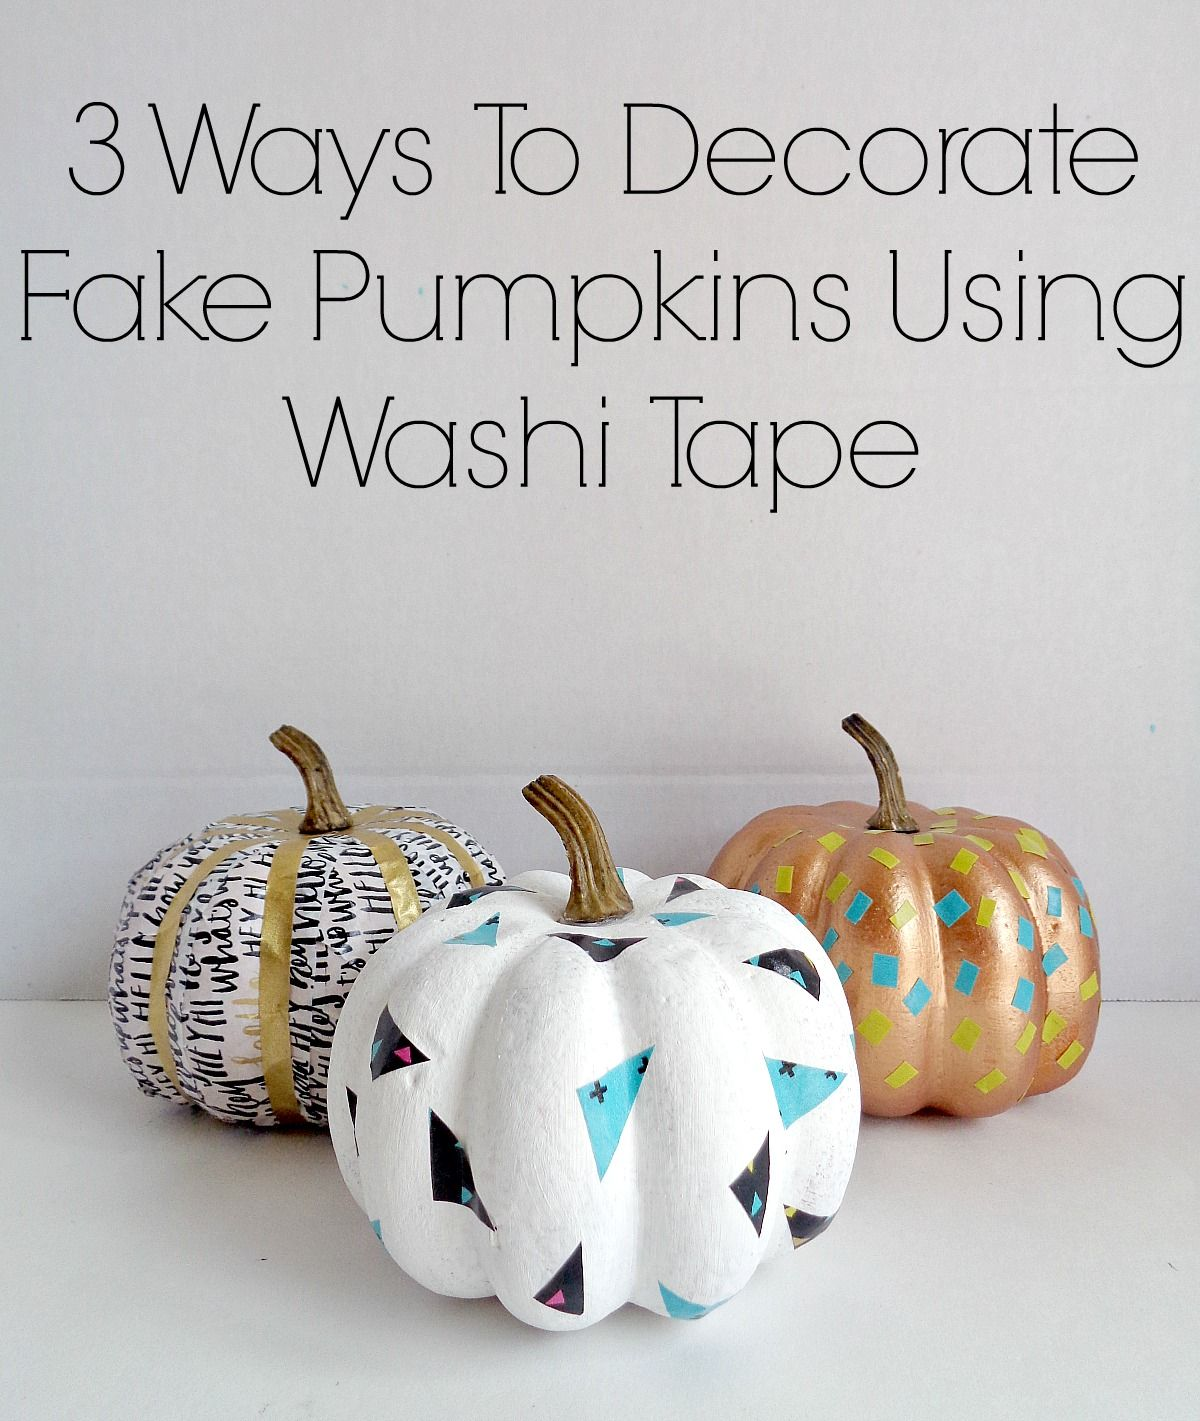 3 ways to decorate fake pumpkins using washi tape